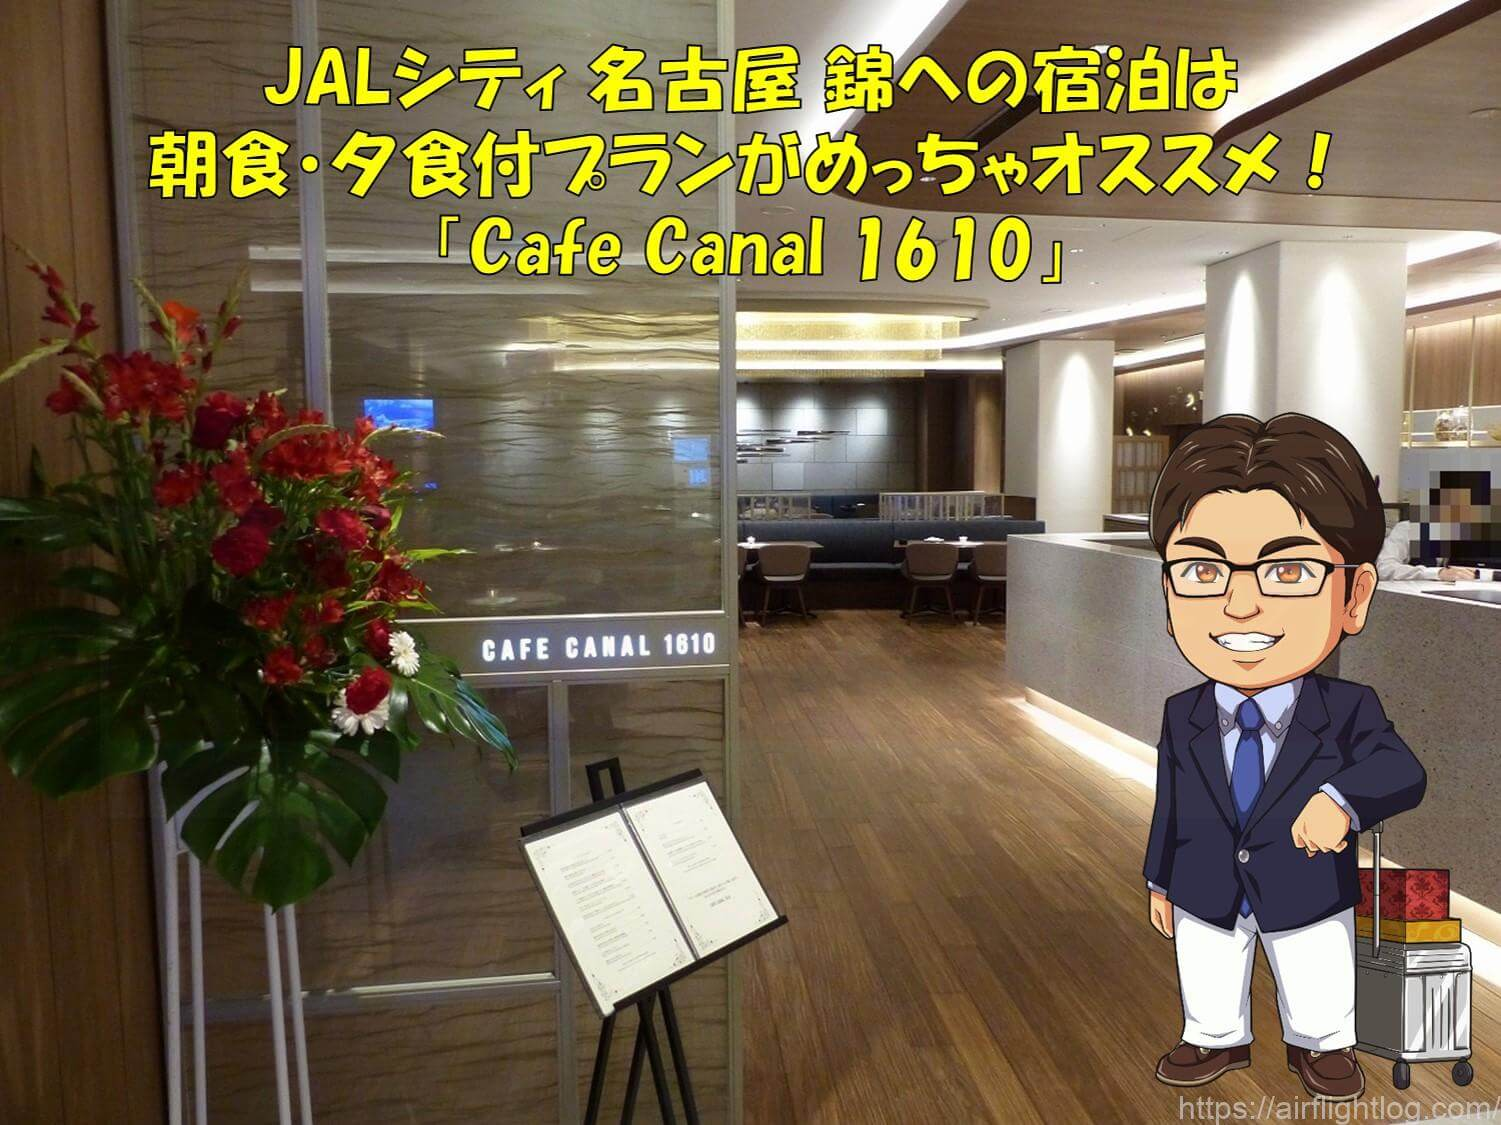 JALシティ 名古屋 錦レストラン「Cafe Canal 1610」